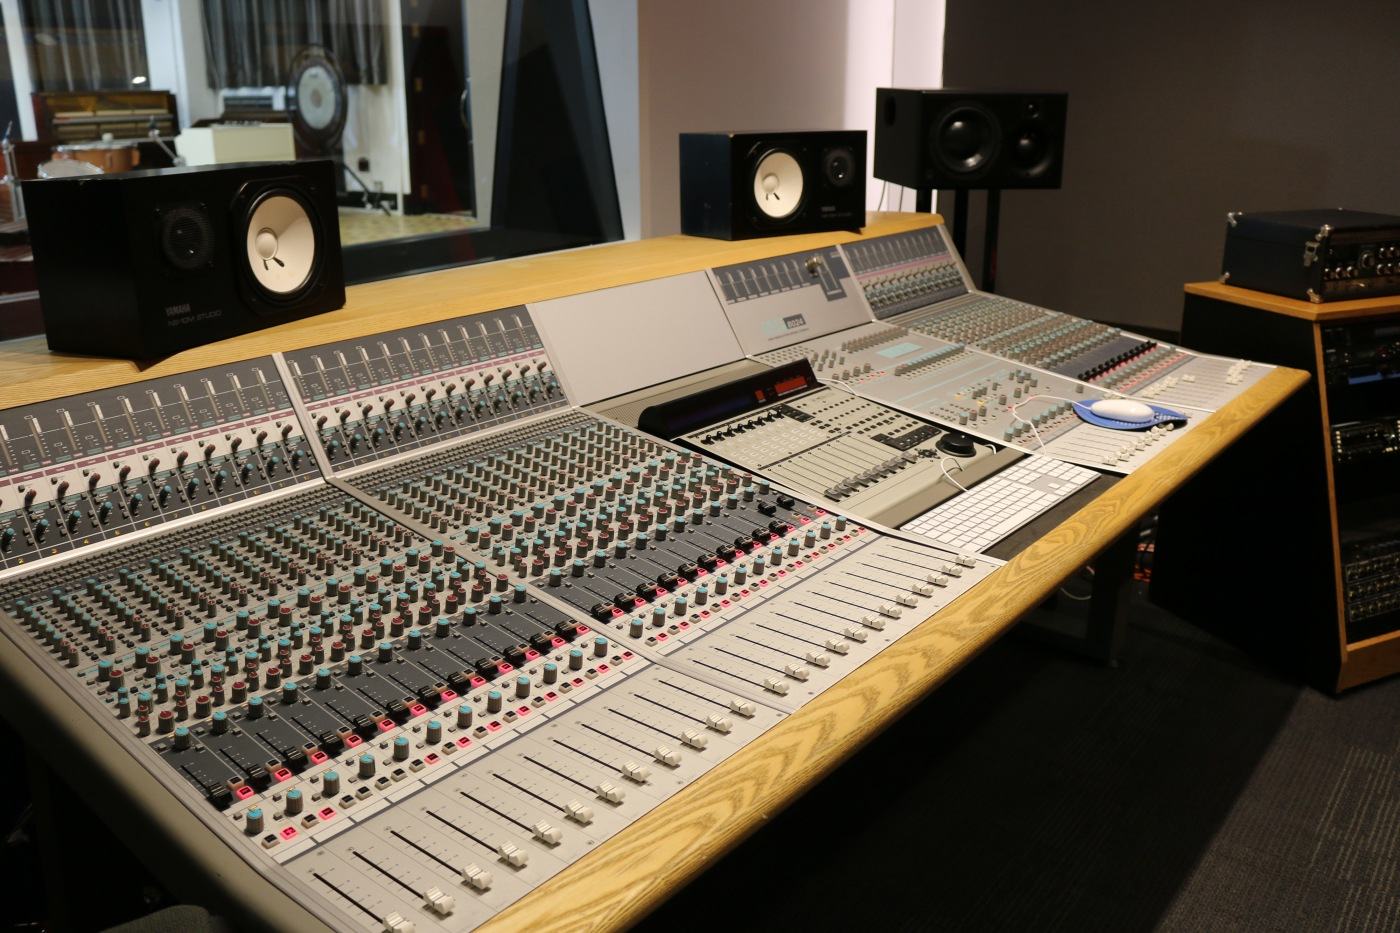 Audient asp8024 36 channel inline mixing desk in control room at the visconti studio